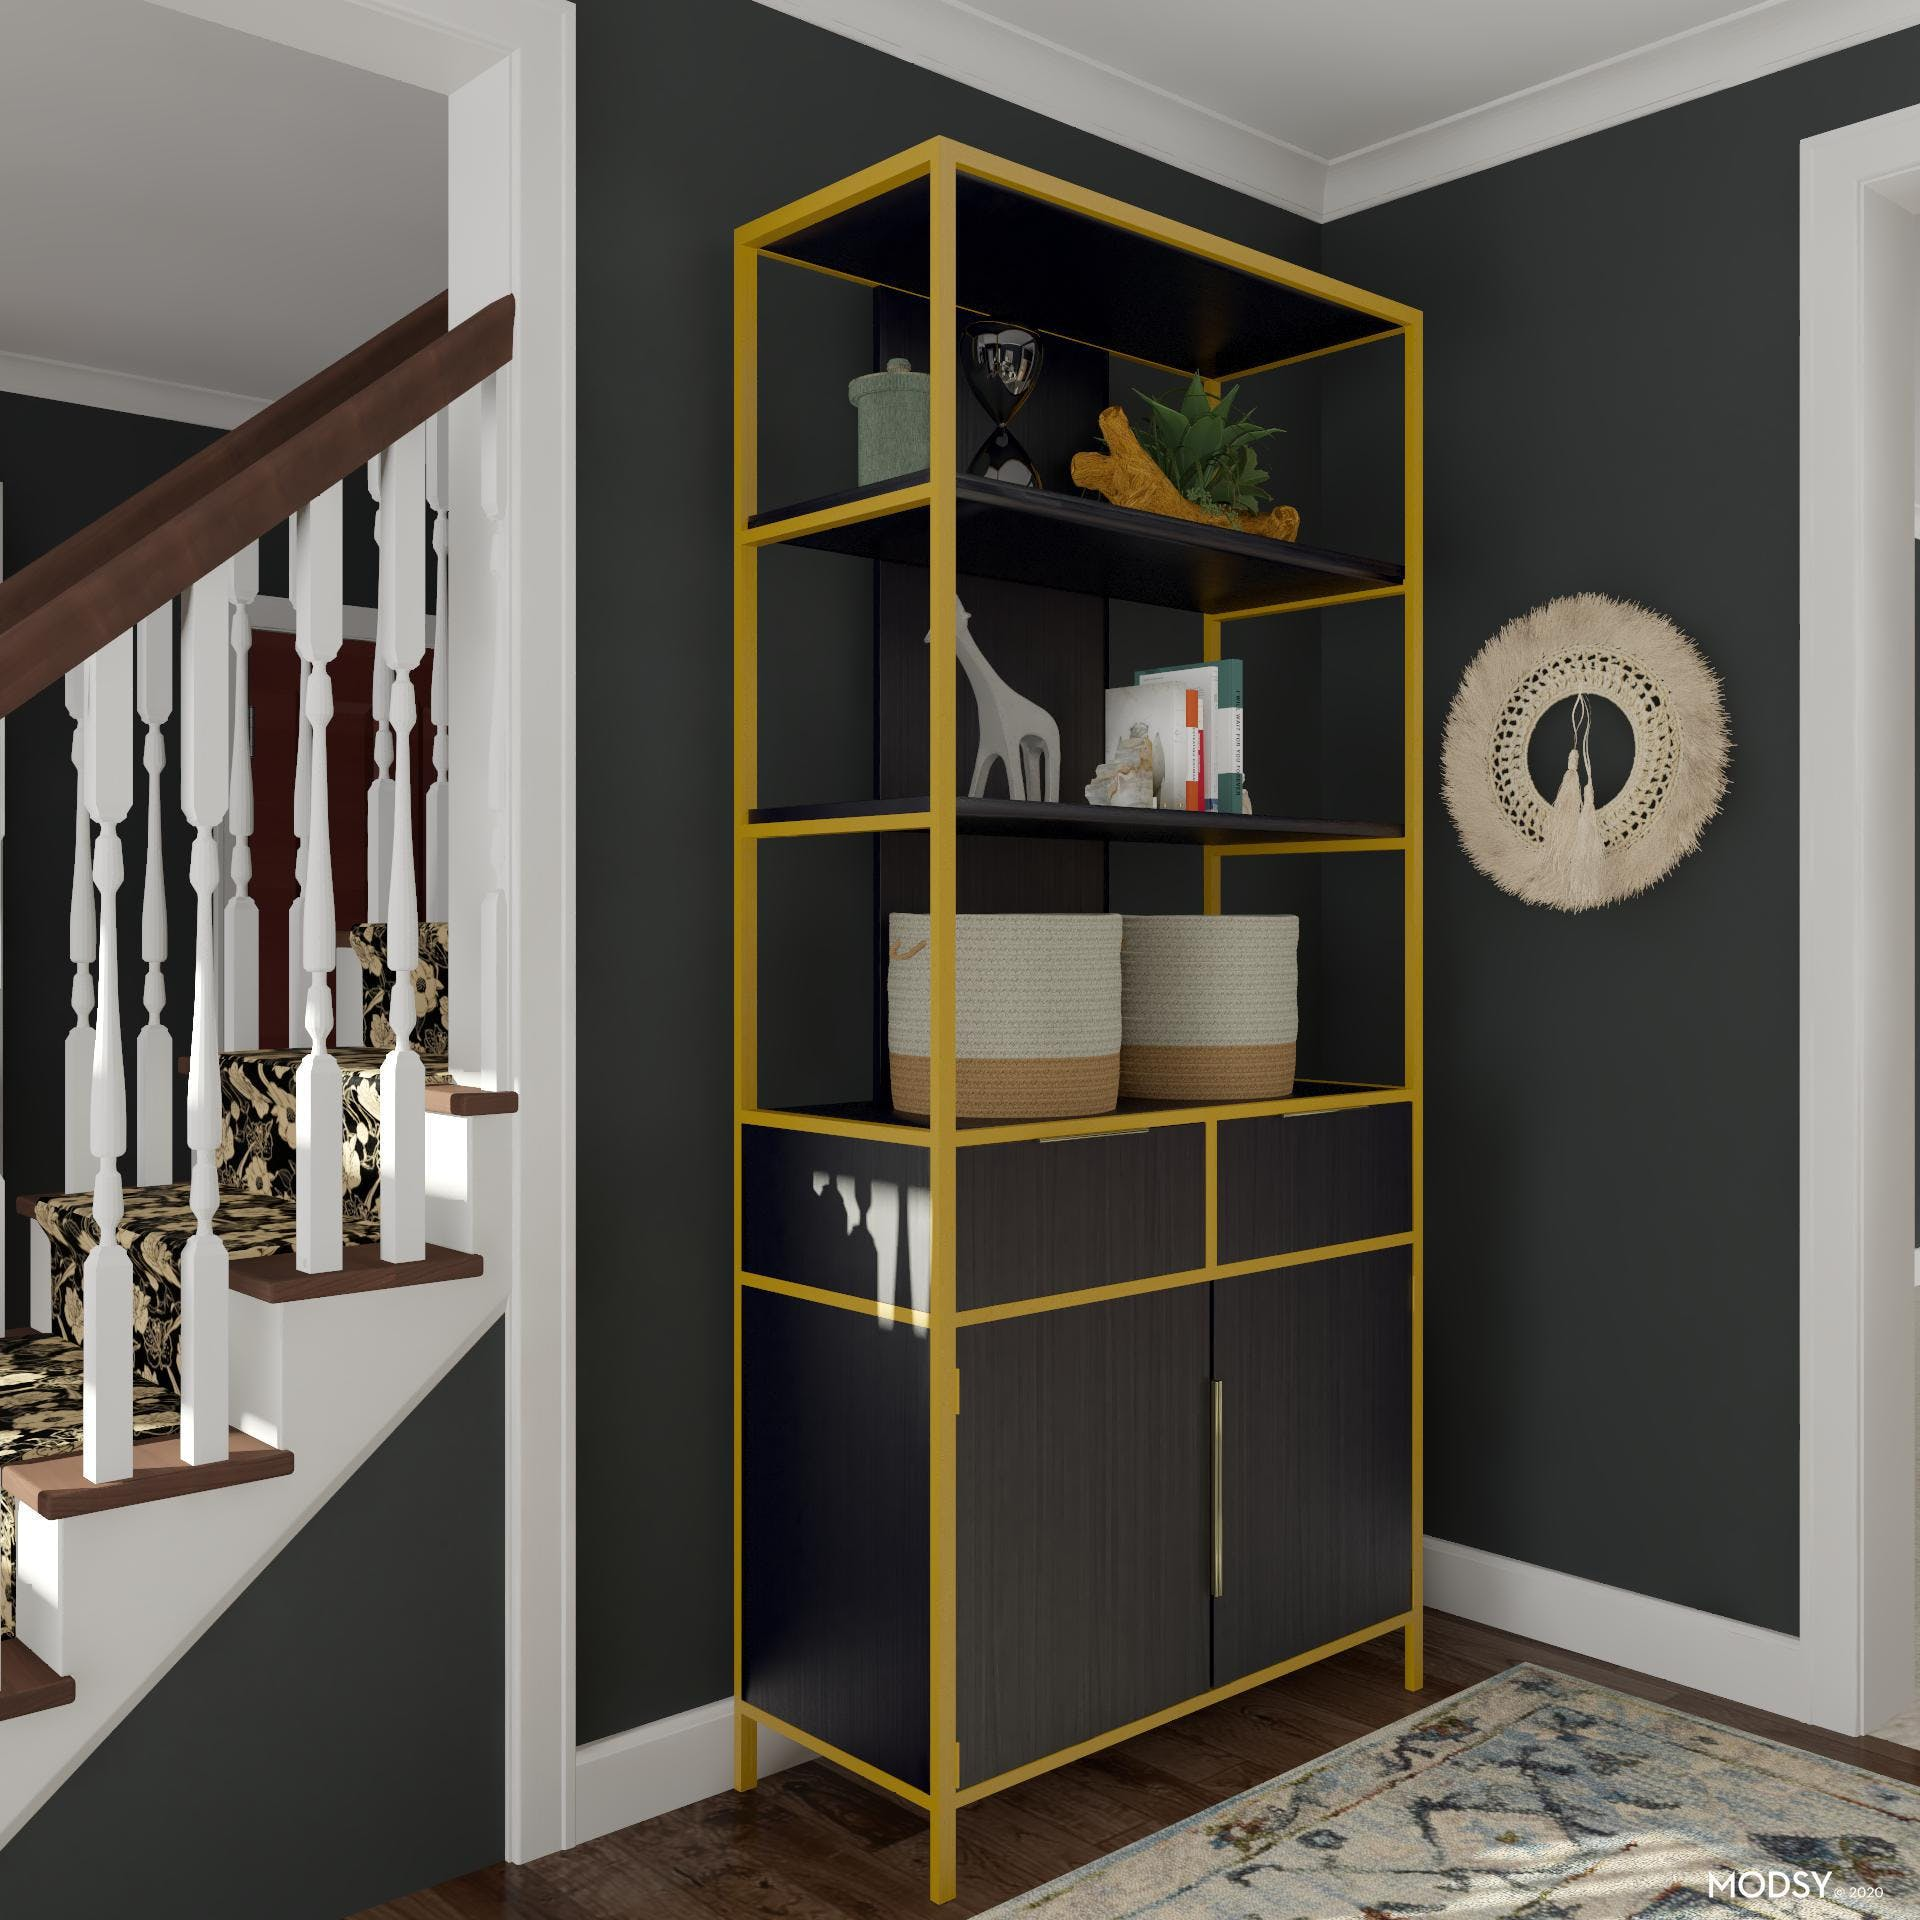 Etagere: Utility And Grace